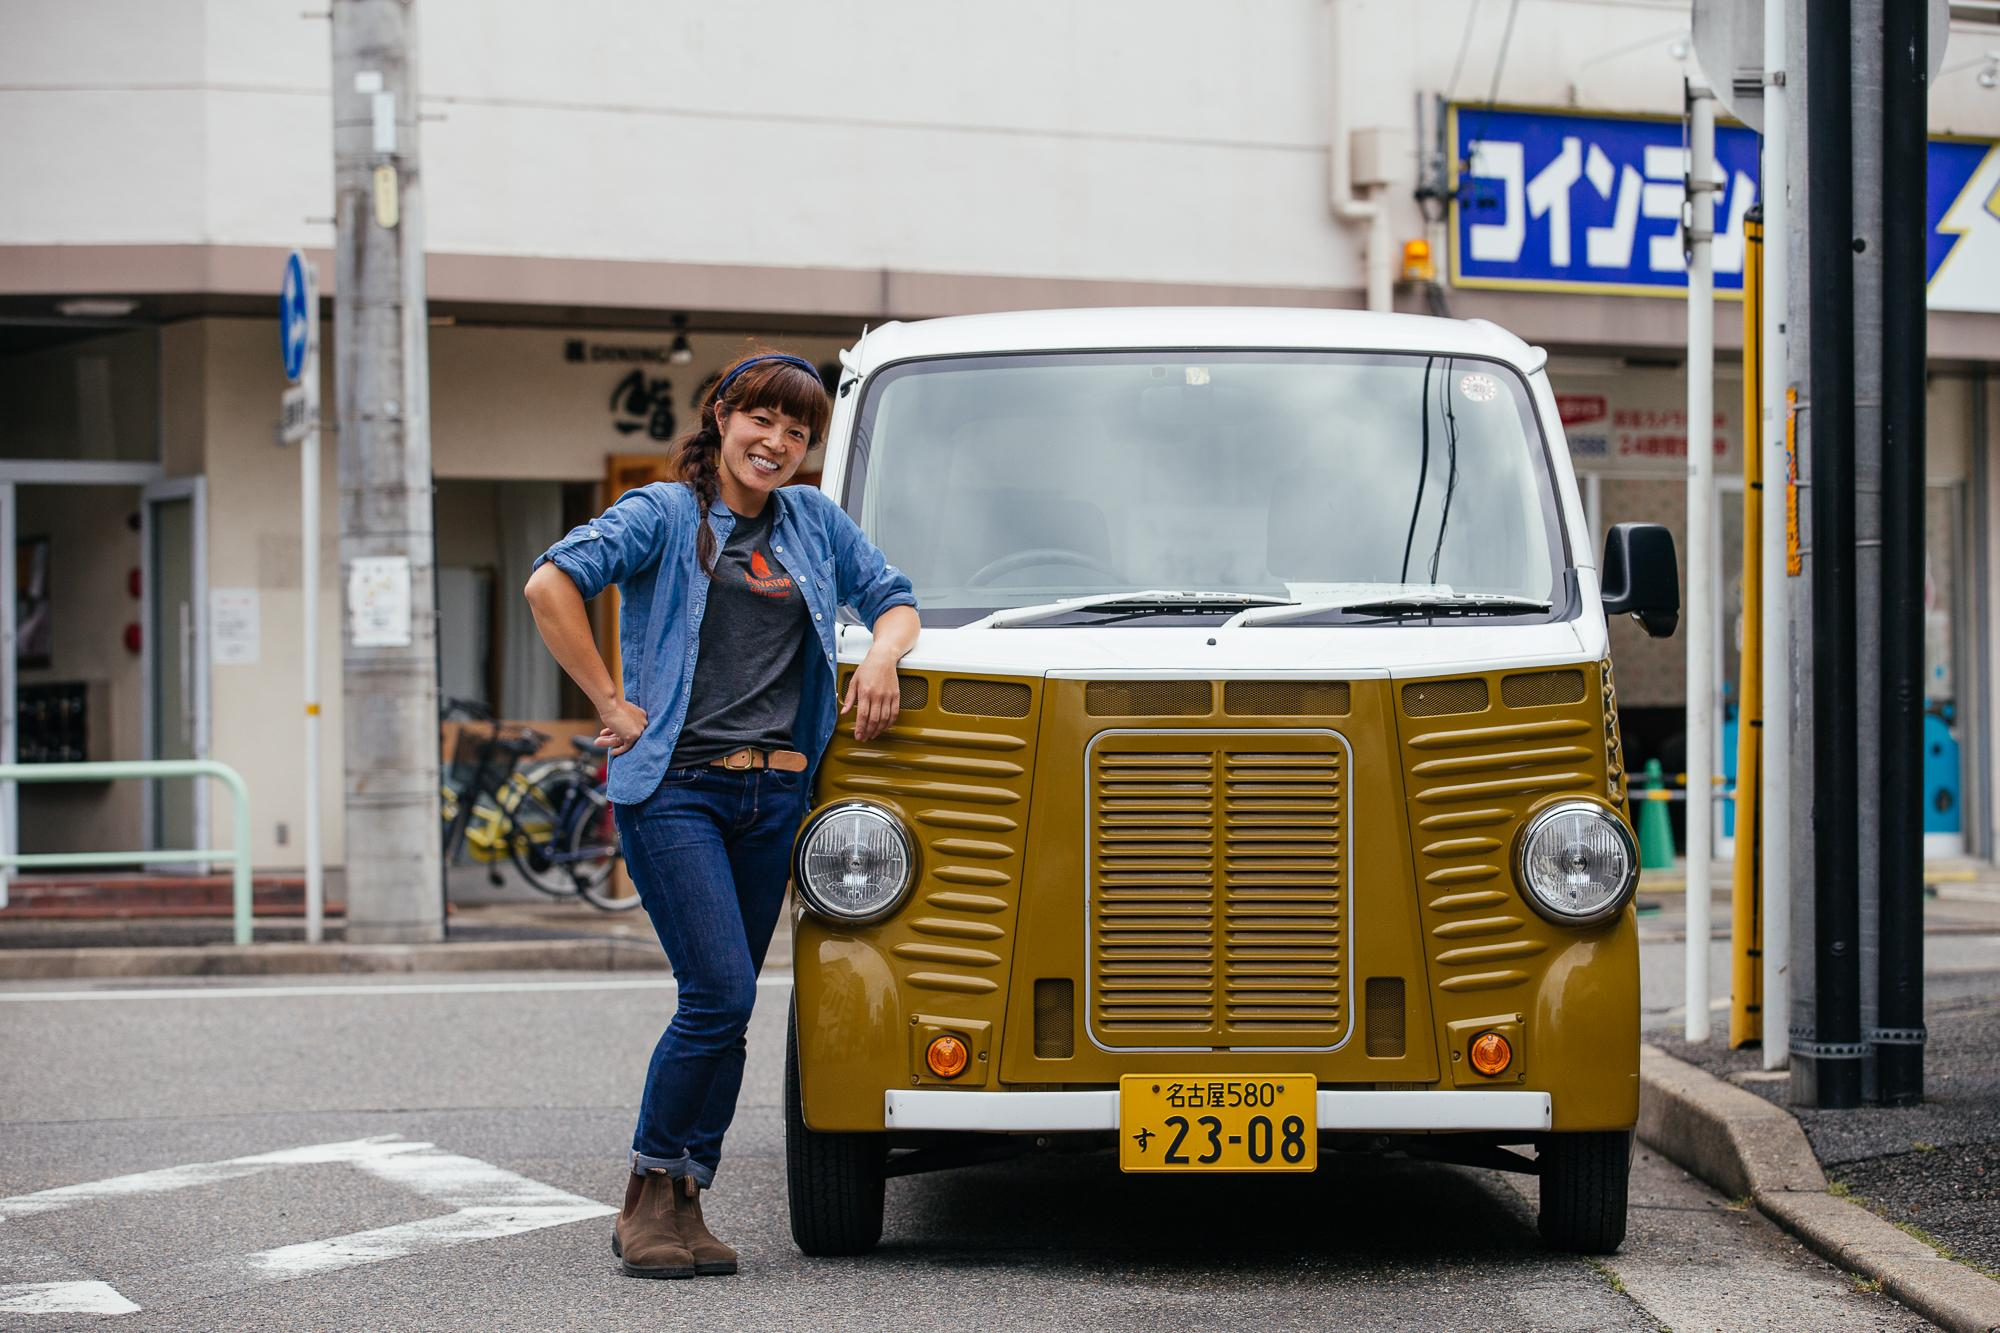 Rie and her cool van!